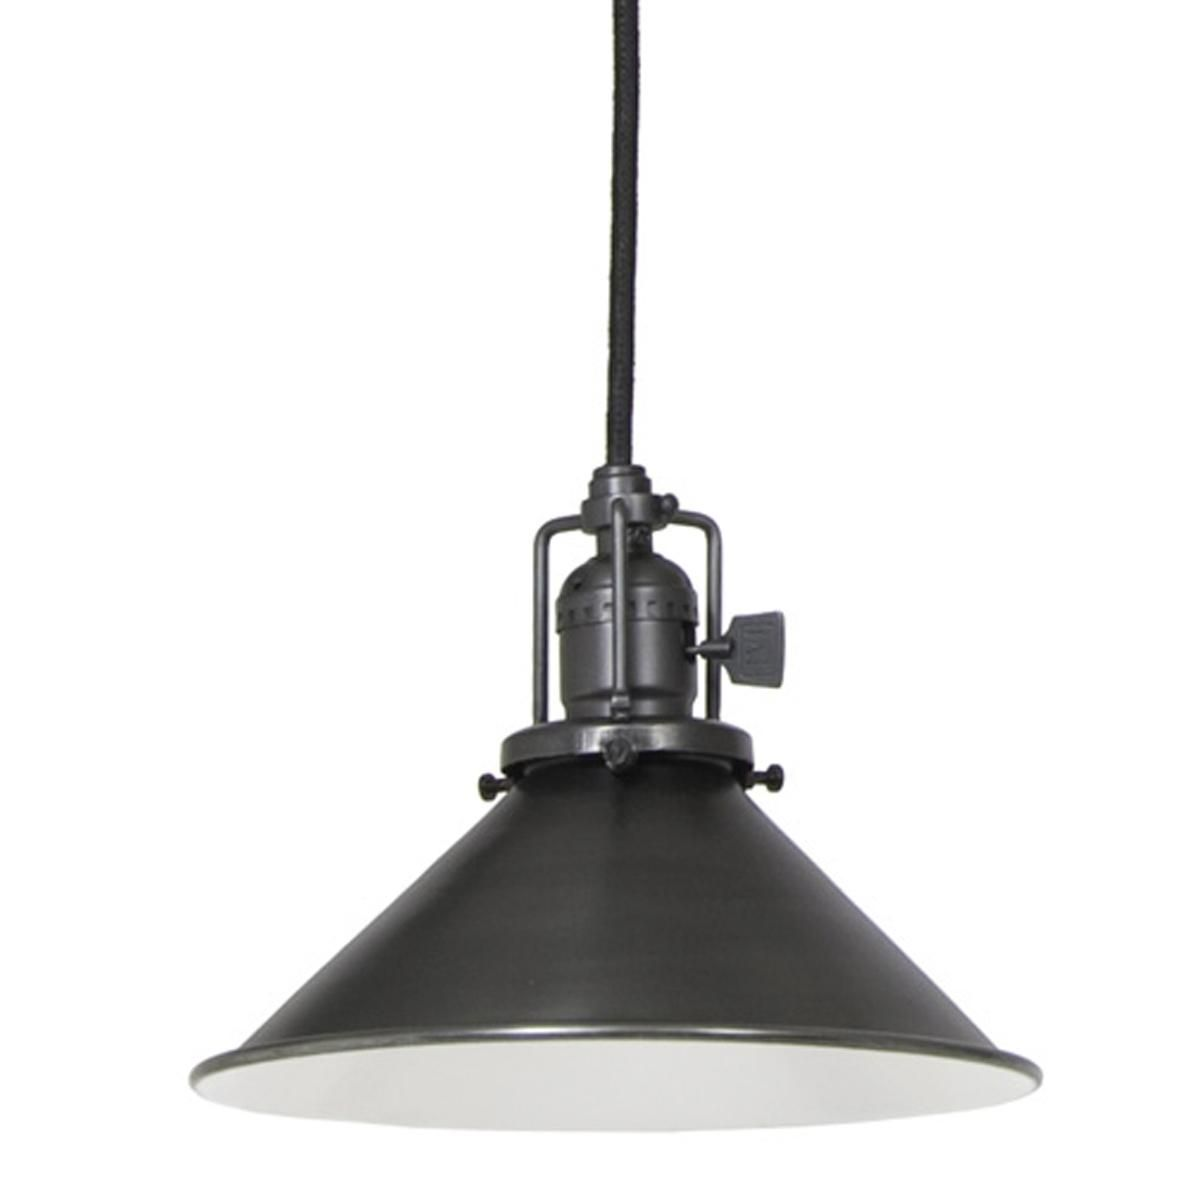 Kitchen Pendant Lighting Glass Shades Cone Shade Industrial Pendant Gunmetal Two Over The Sink